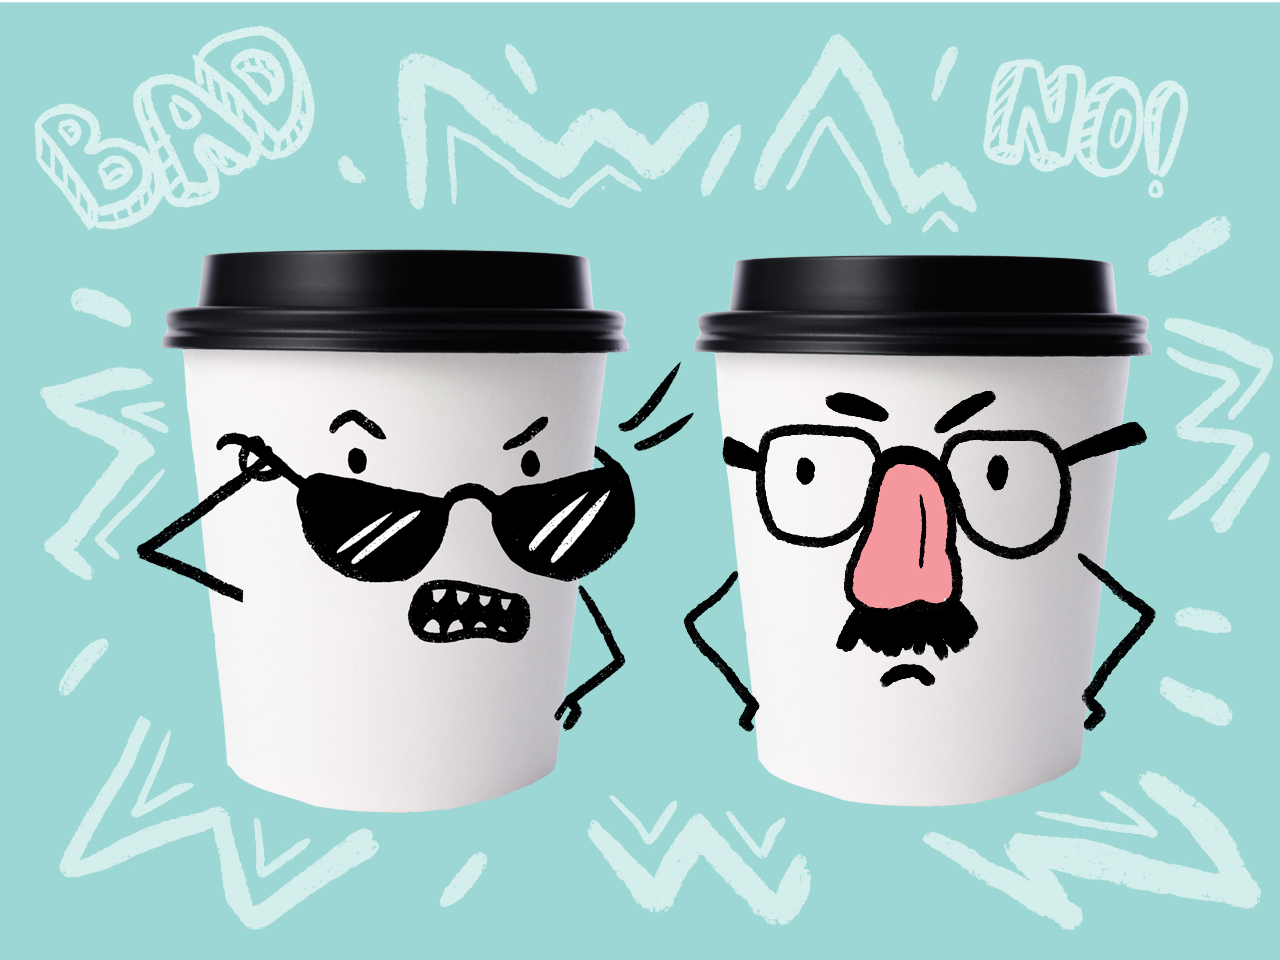 two disposable coffee cups with angry faces illustrated on them